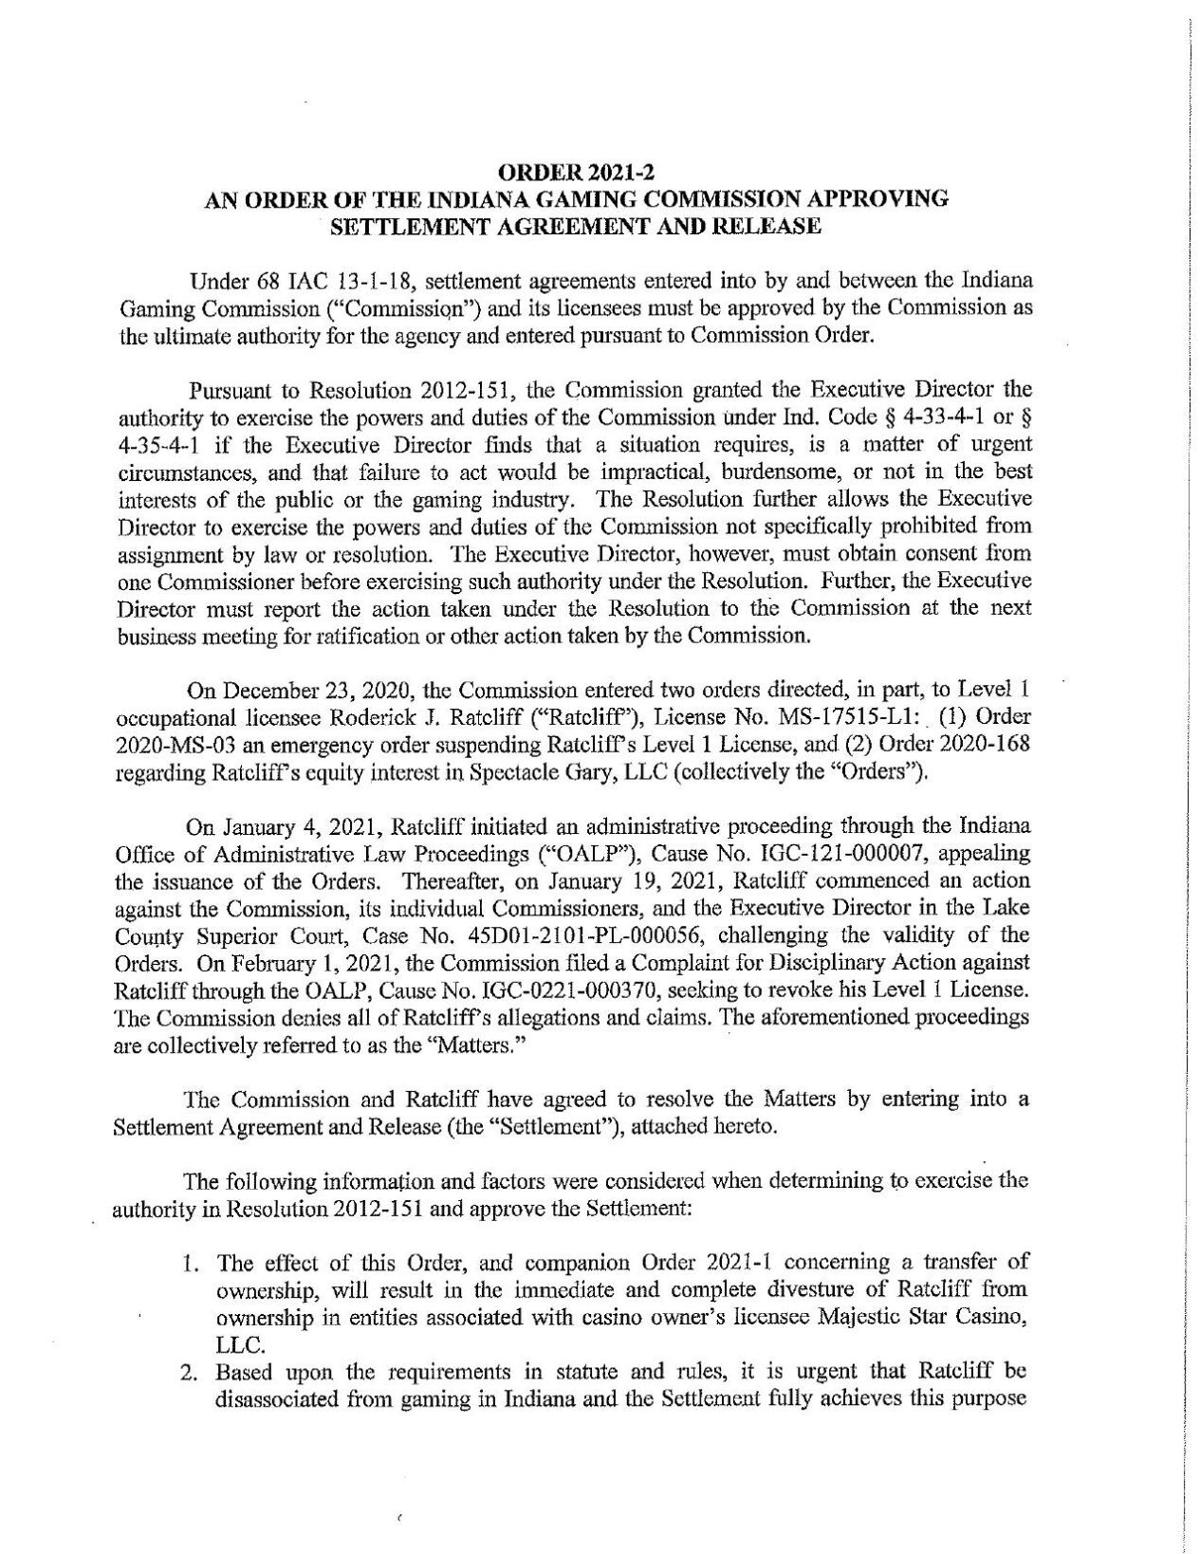 Gaming Commission settlement agreement with Rod Ratcliff